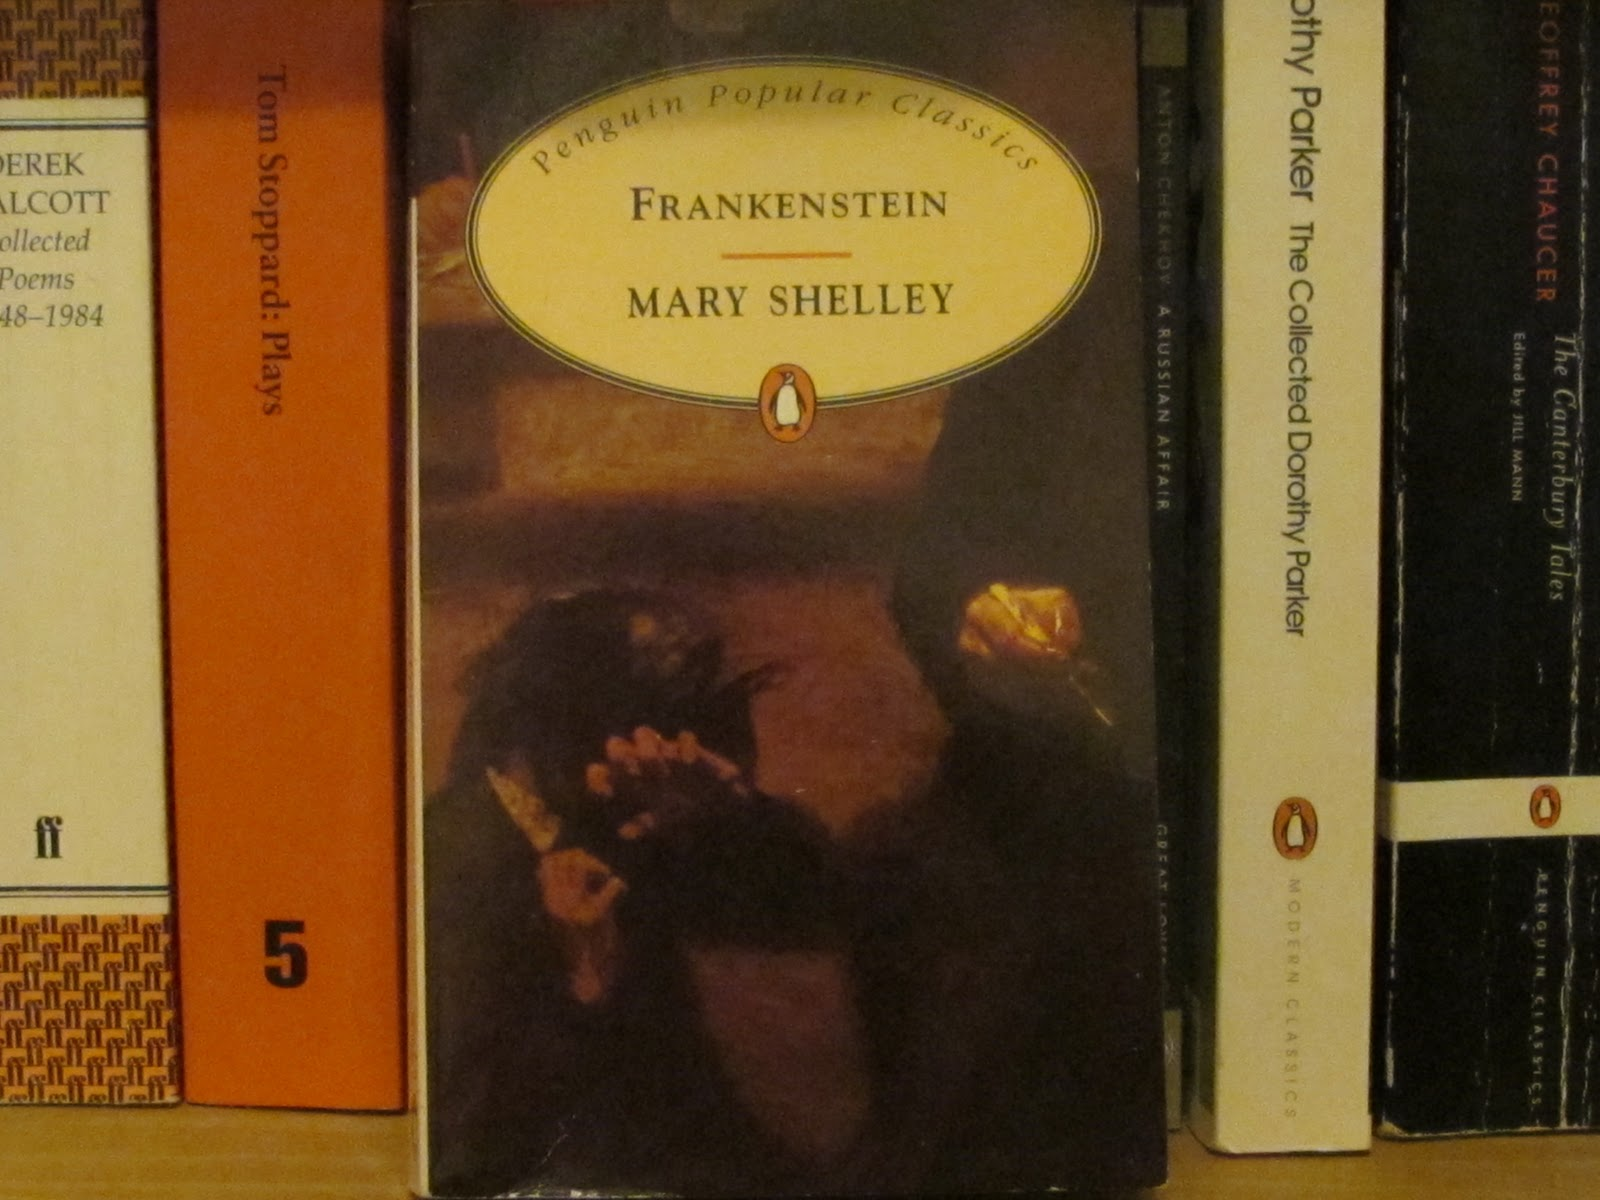 imagination vs obsession in mary shelley's 8 books that wouldn't exist without mary shelley's 'frankenstein' on the book's 200th anniversary, michael sims, author of 'frankenstein dreams,' collects frankenstein's hideous progeny.